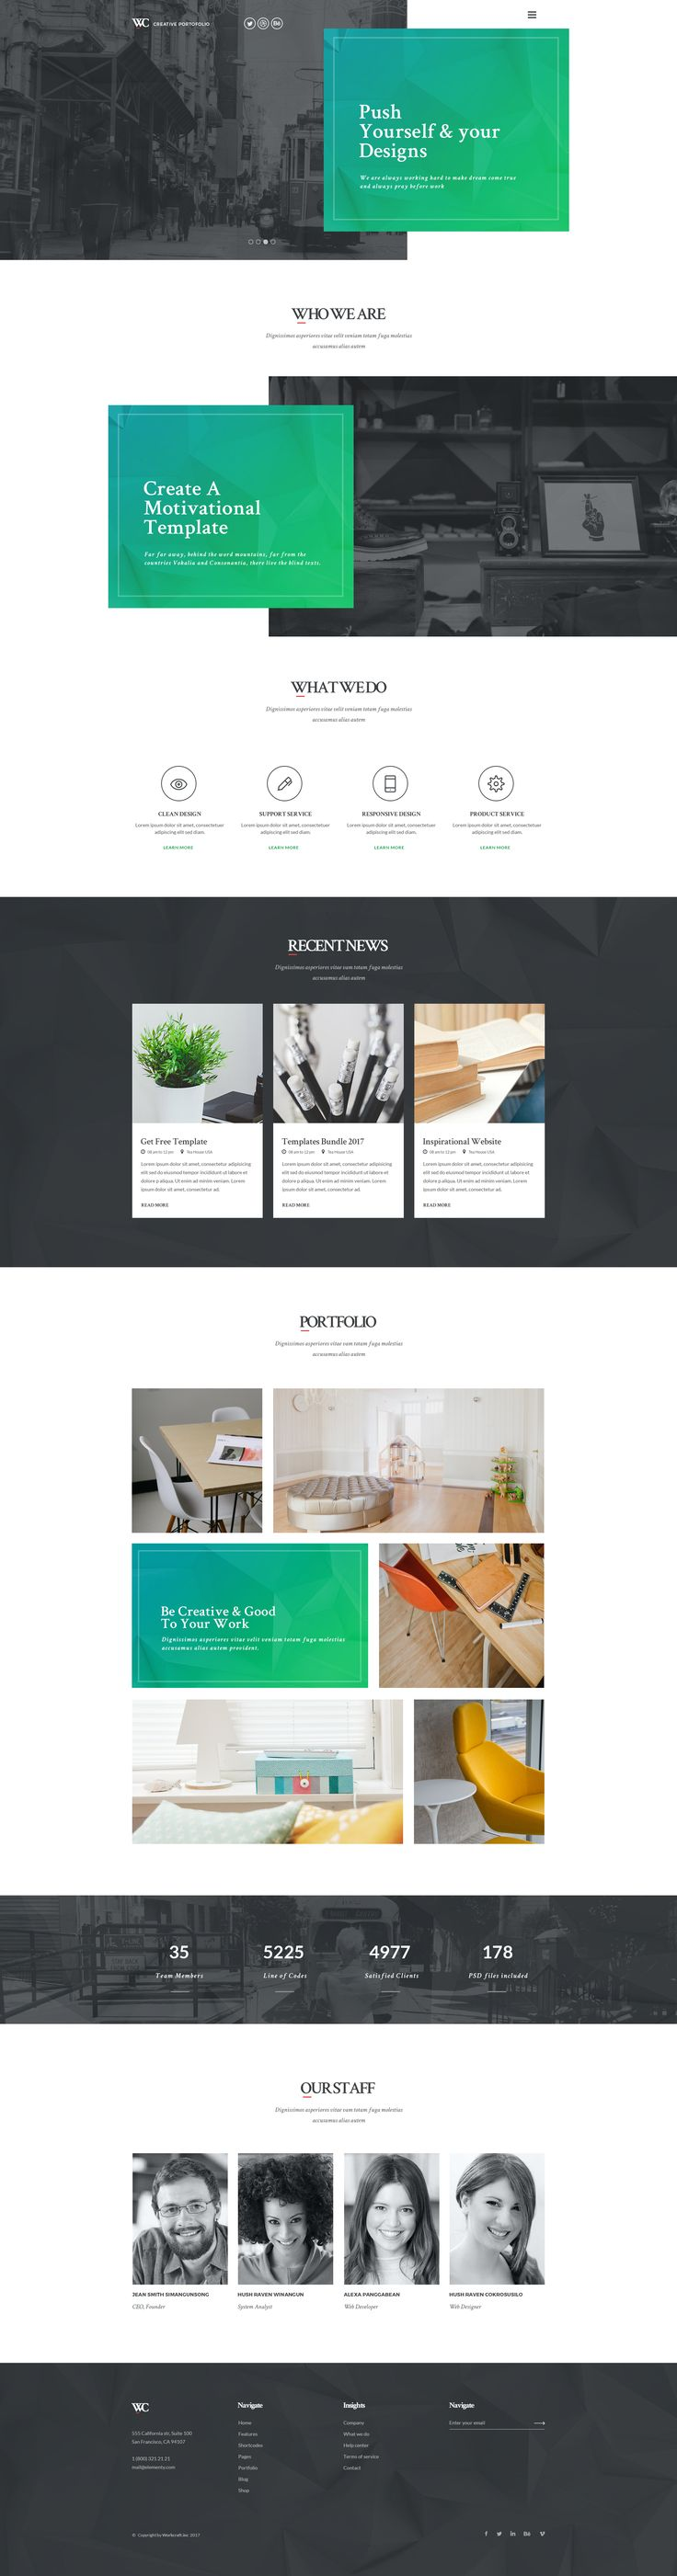 Woodcraft - One Page Creative Portfolio by vanpatelona | ThemeForest